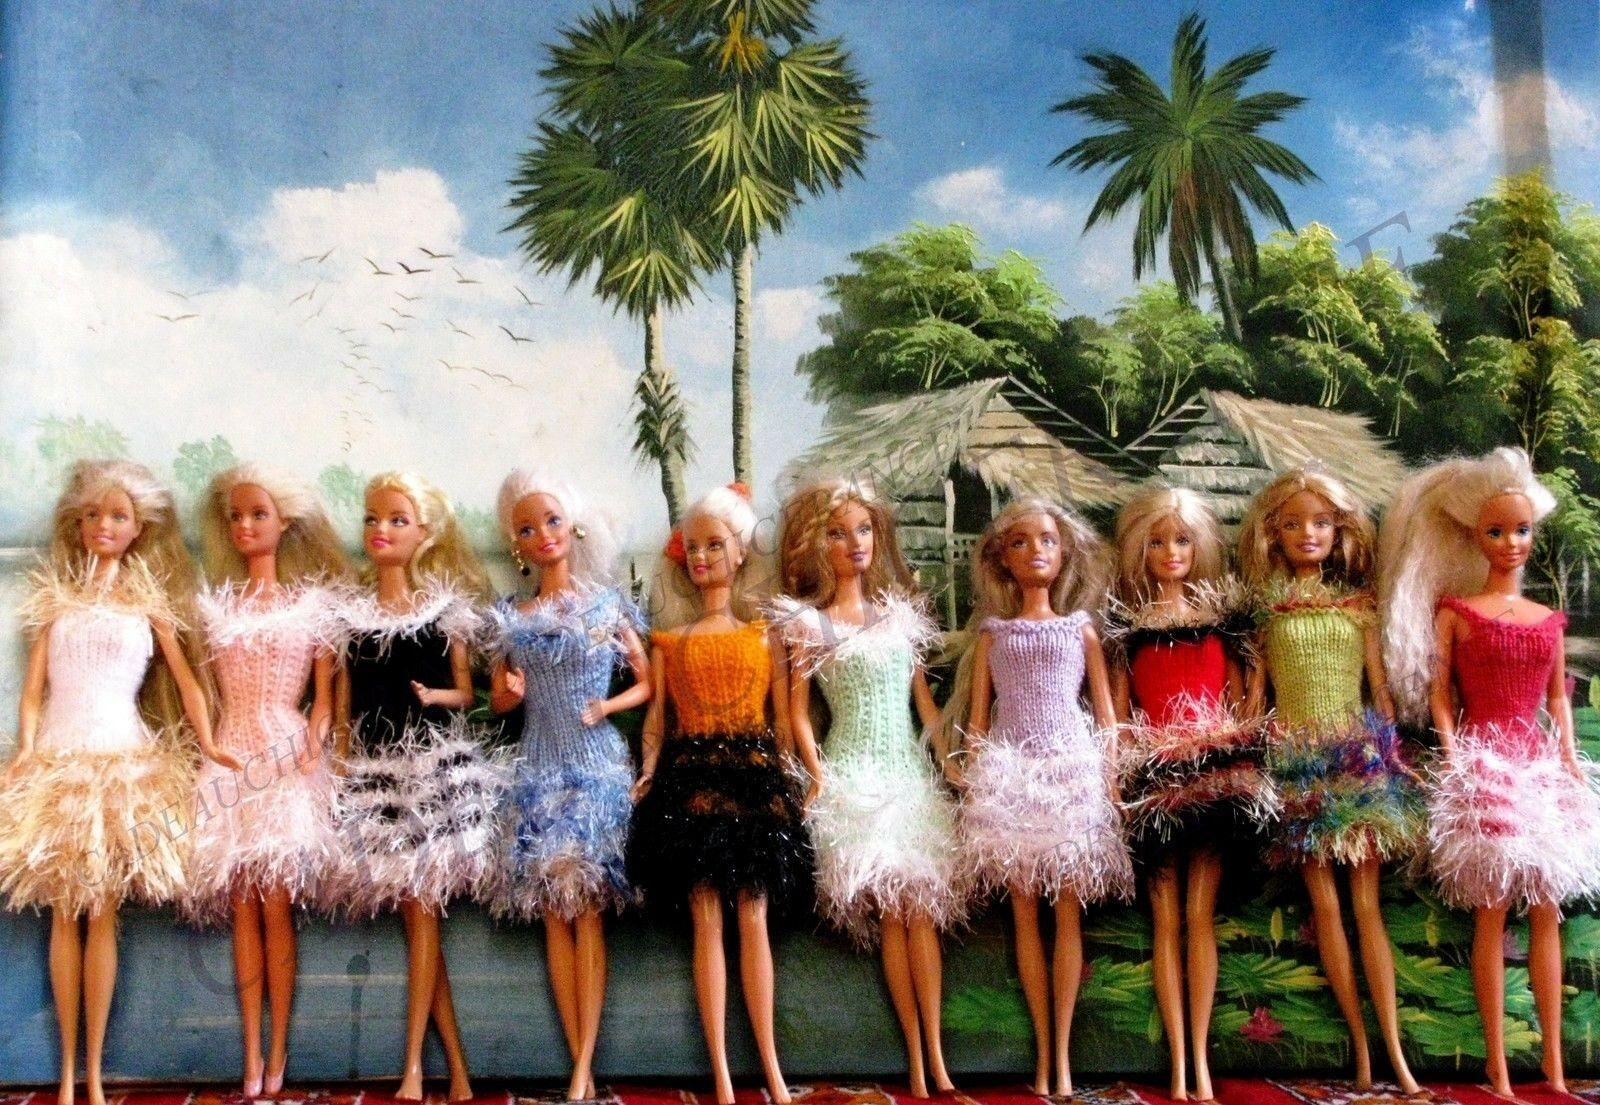 10 ROBES BARBIE HAWAI UNIQUES FAITES MAIN Noel CADEAU NOEL BARBIE  Creation